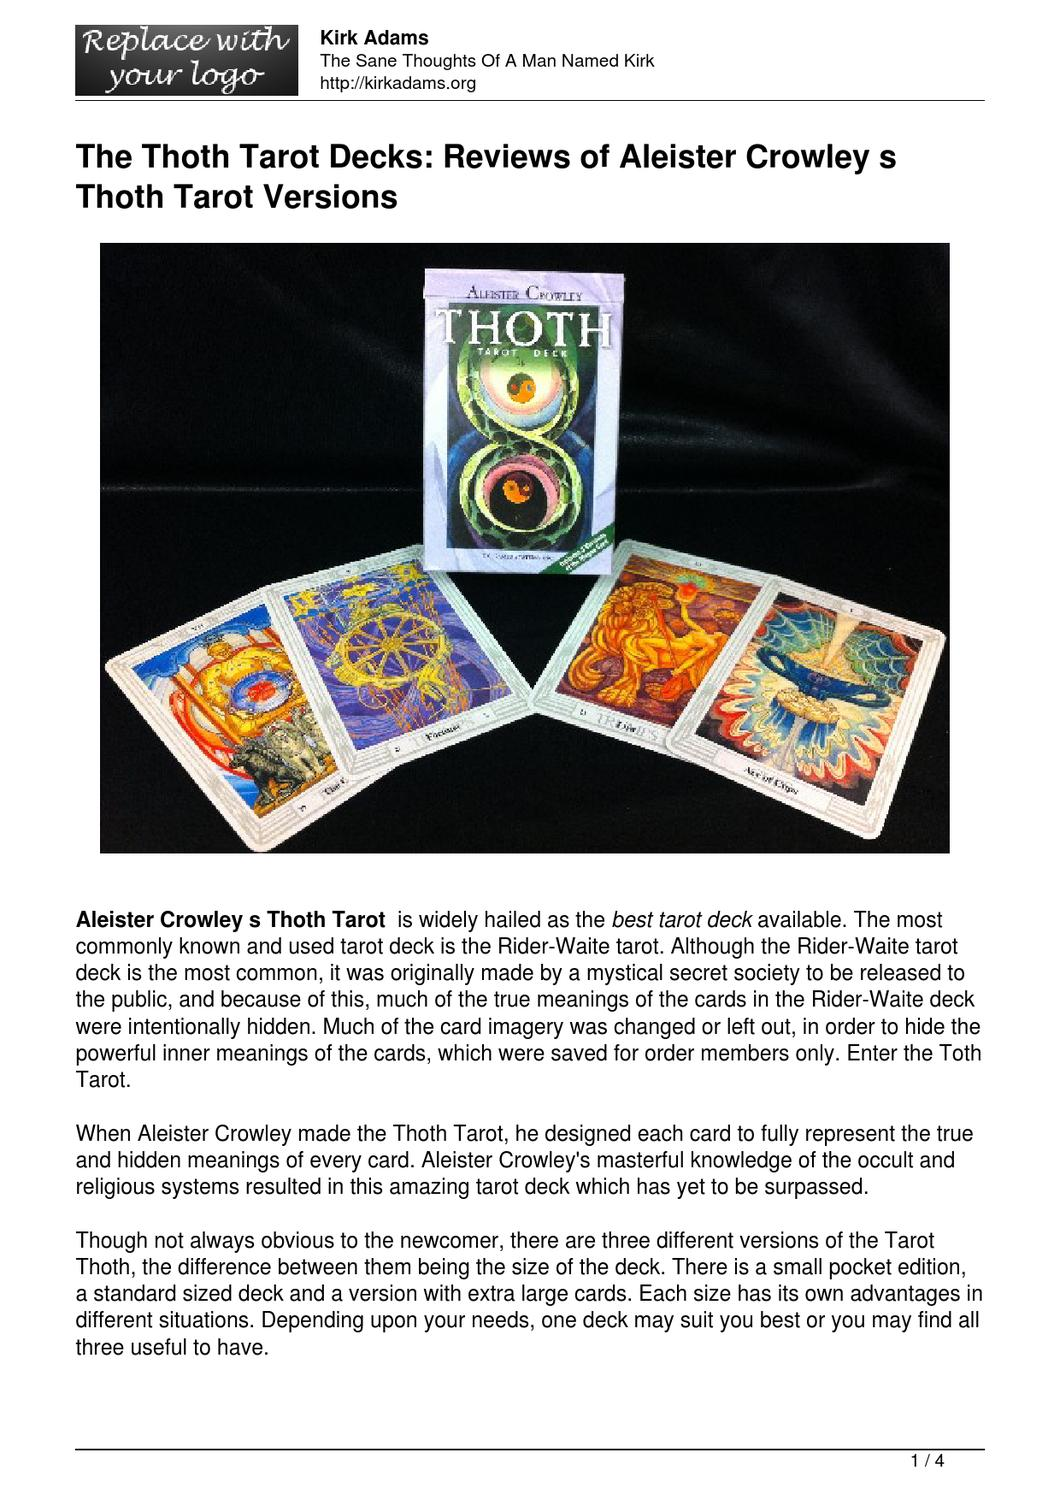 The Thoth Tarot Decks: Reviews Of Aleister Crowley S Thoth